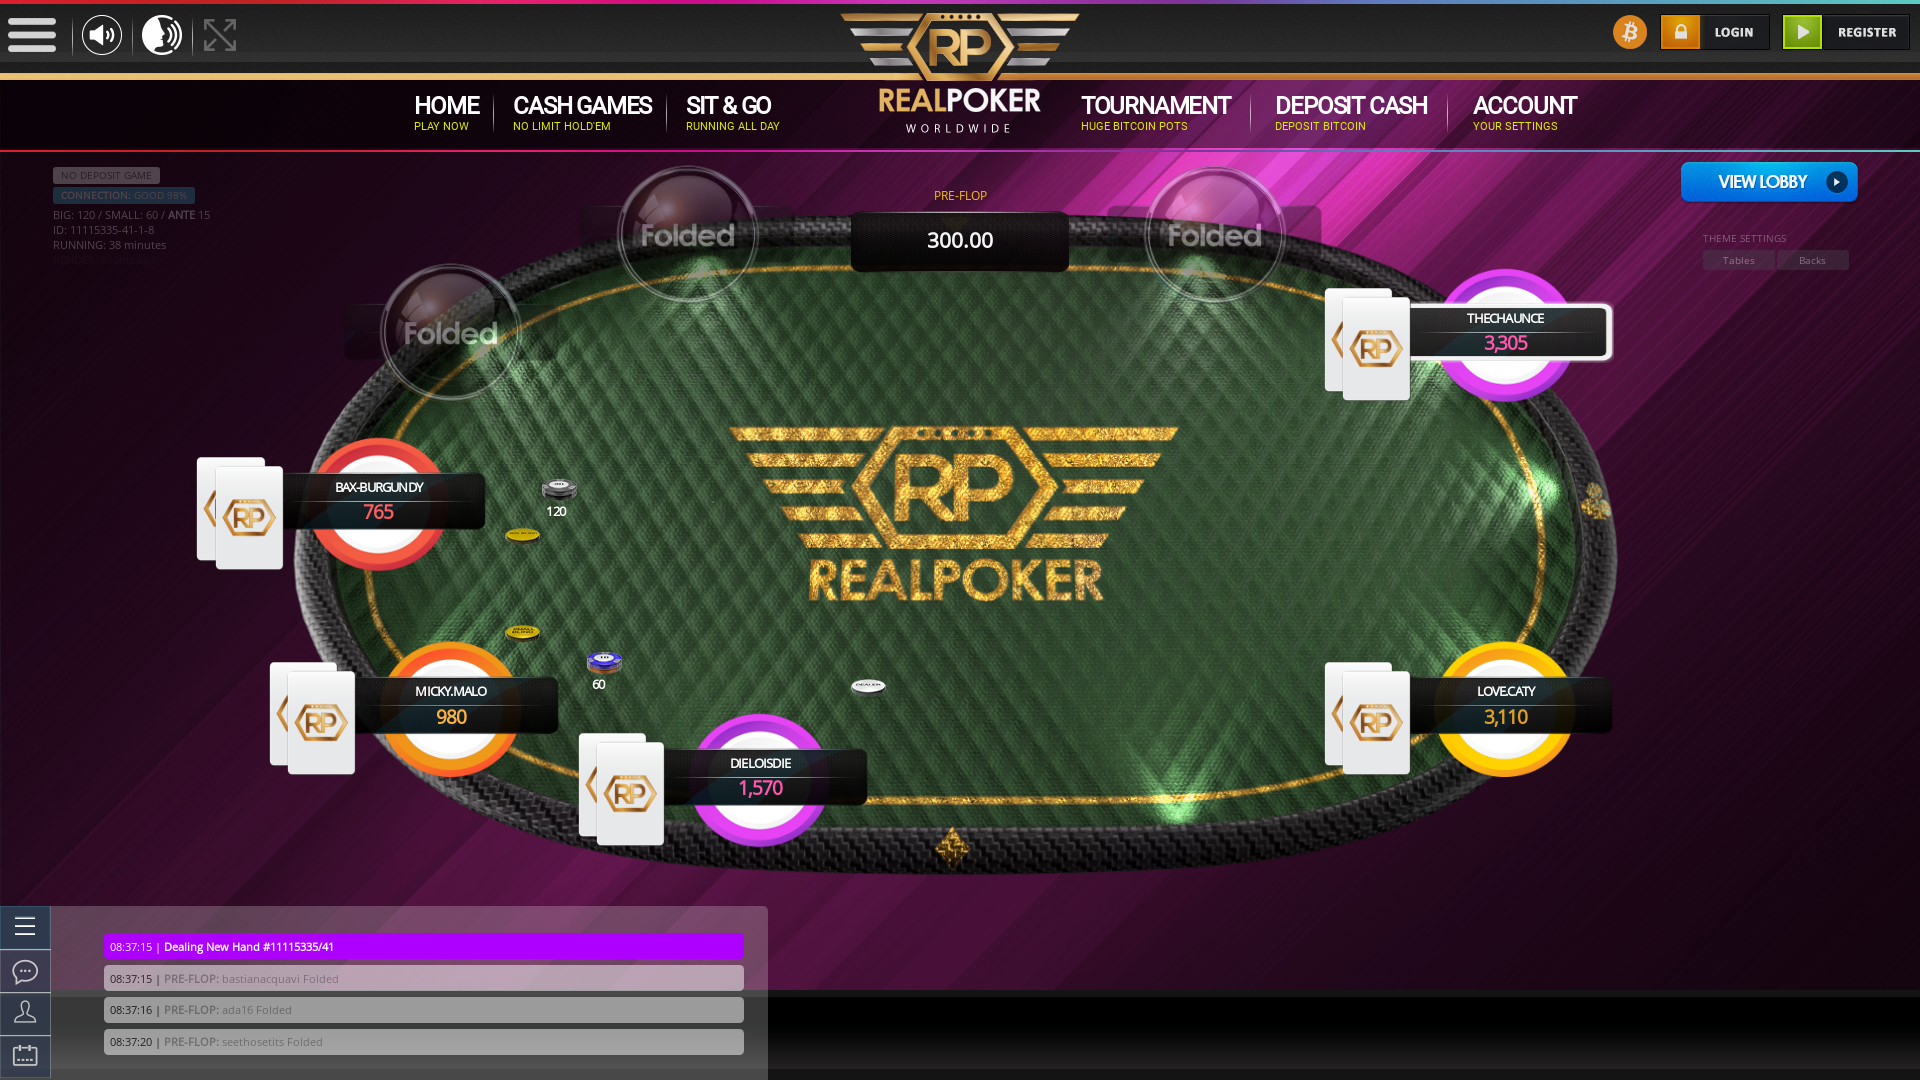 Romania online poker game on a 10 player table in the 38th minute